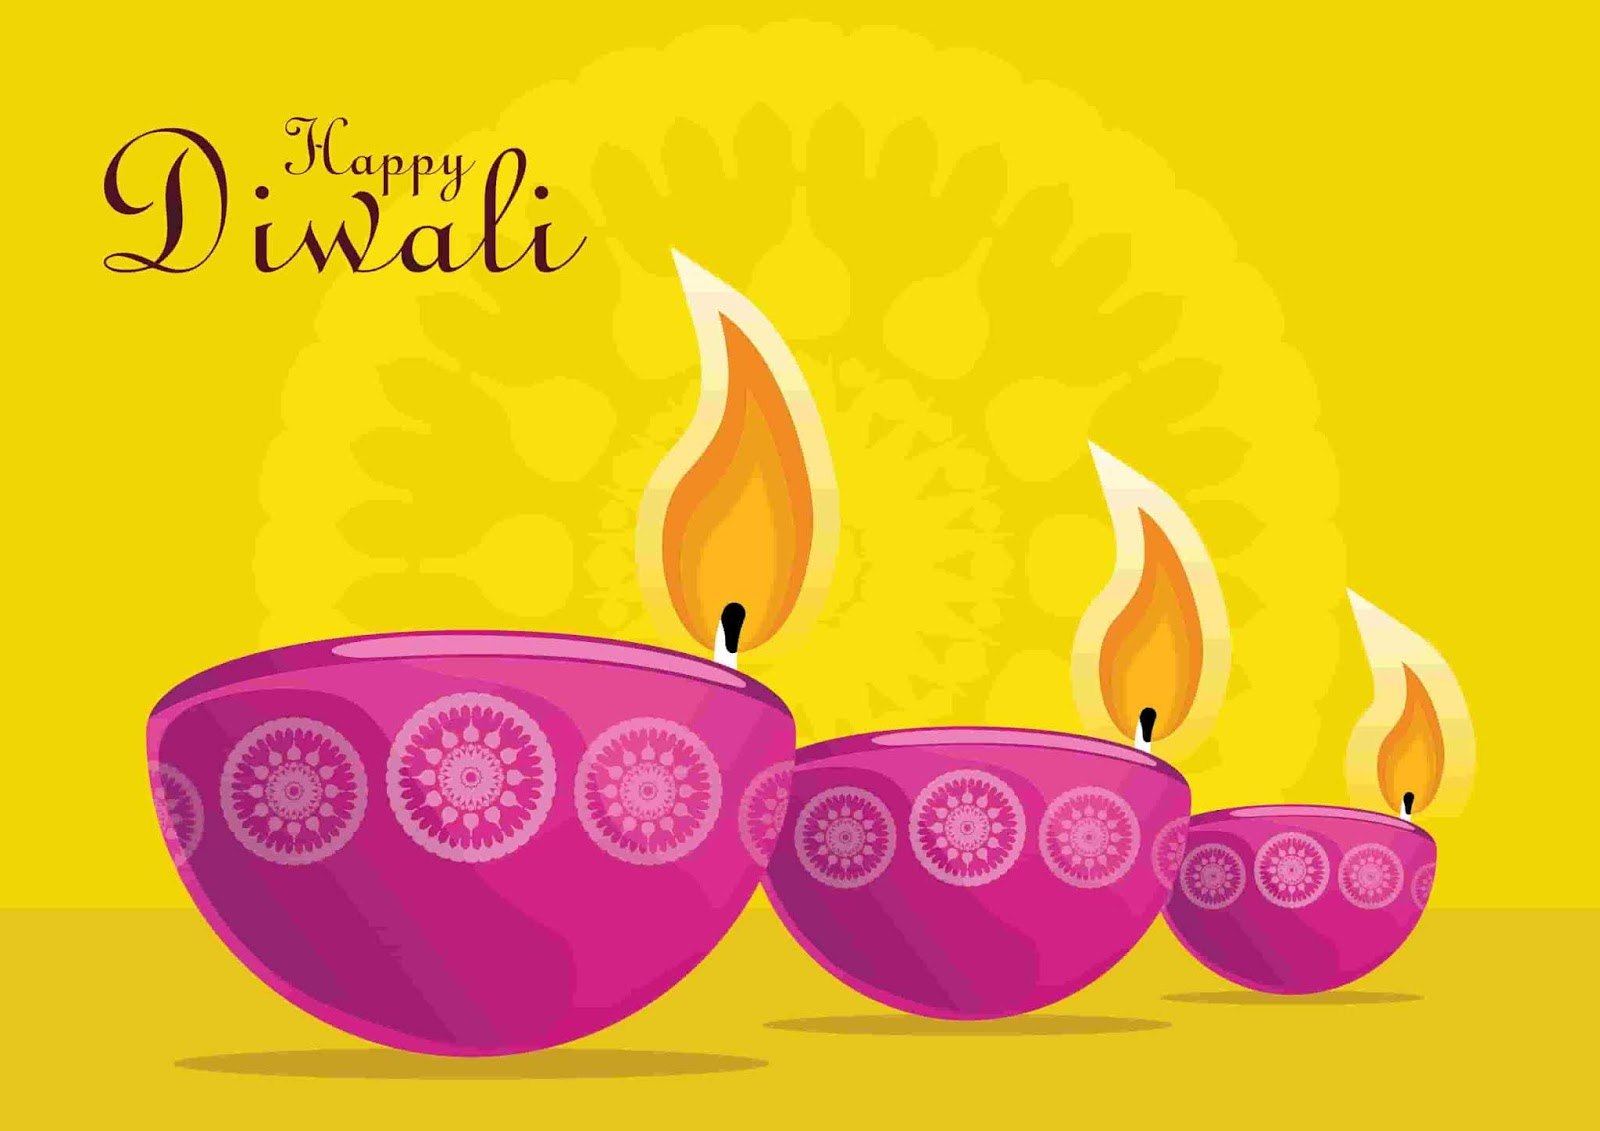 Happy Diwali Happy Diwali 2018 Wishes Quotes Images Whatsapp